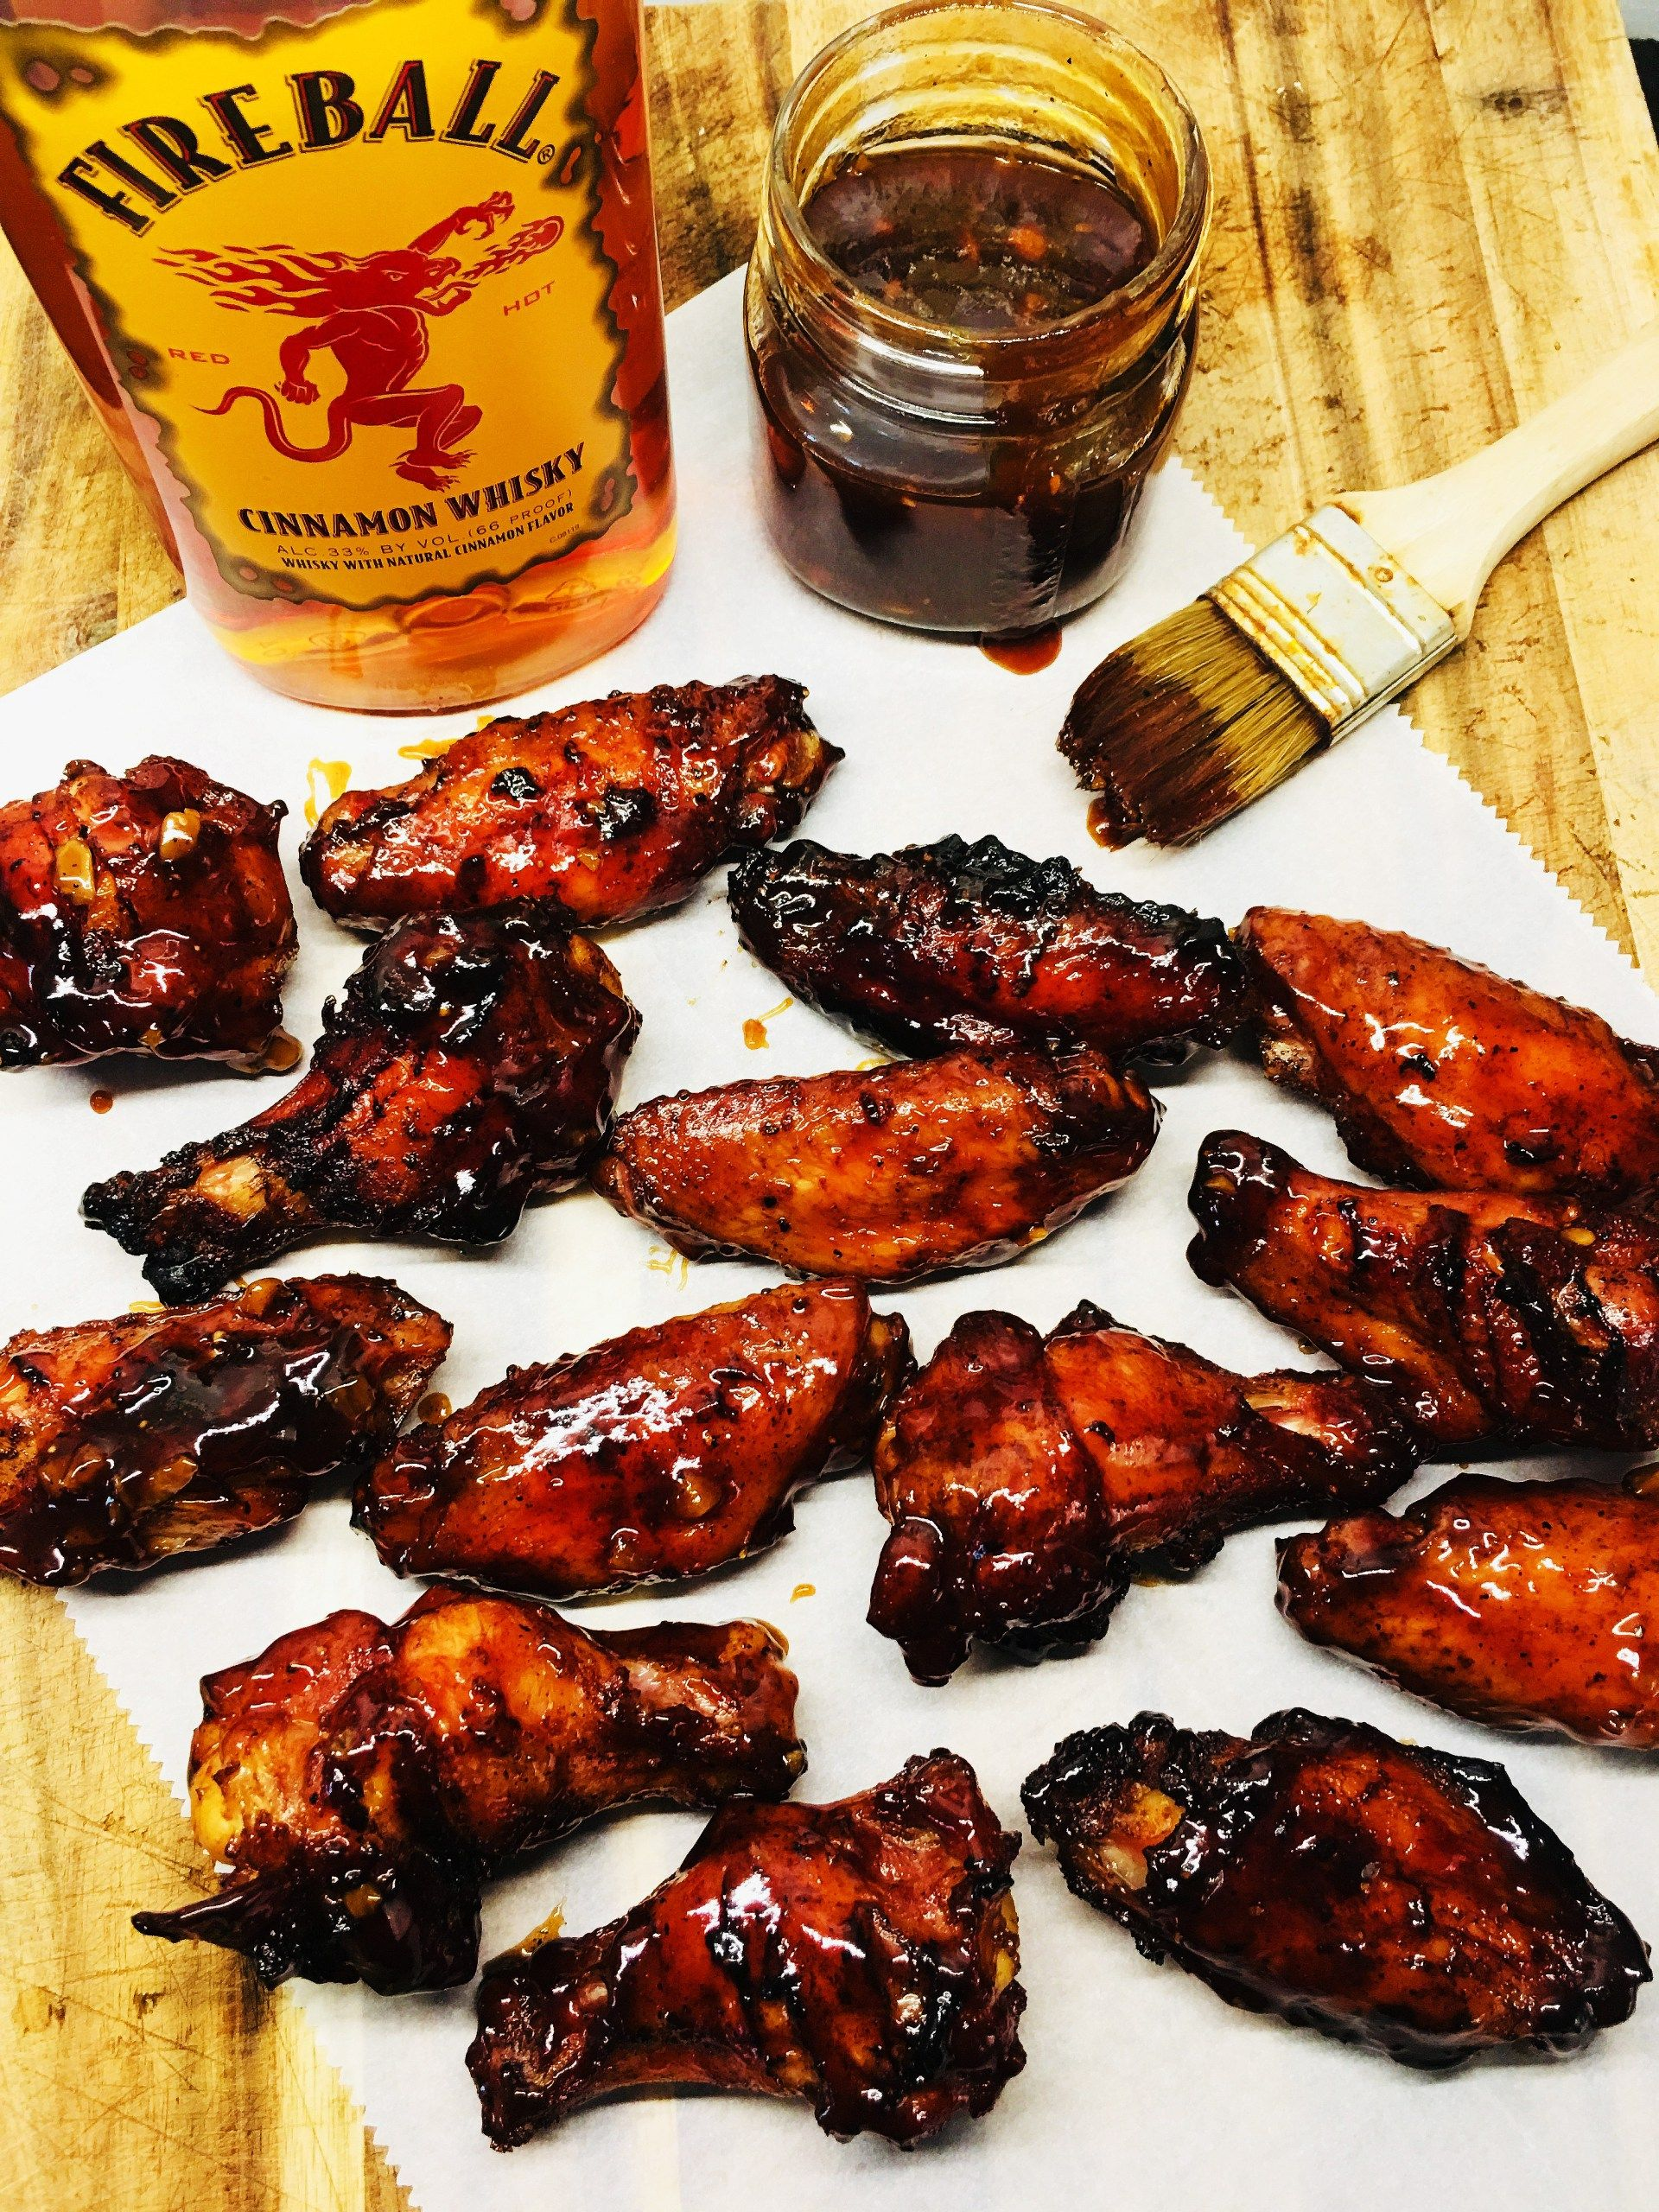 Fireball Whiskey Chicken Wings Cooks Well With Others Recipe Fireball Recipes Whiskey Chicken Cooking Chicken Wings